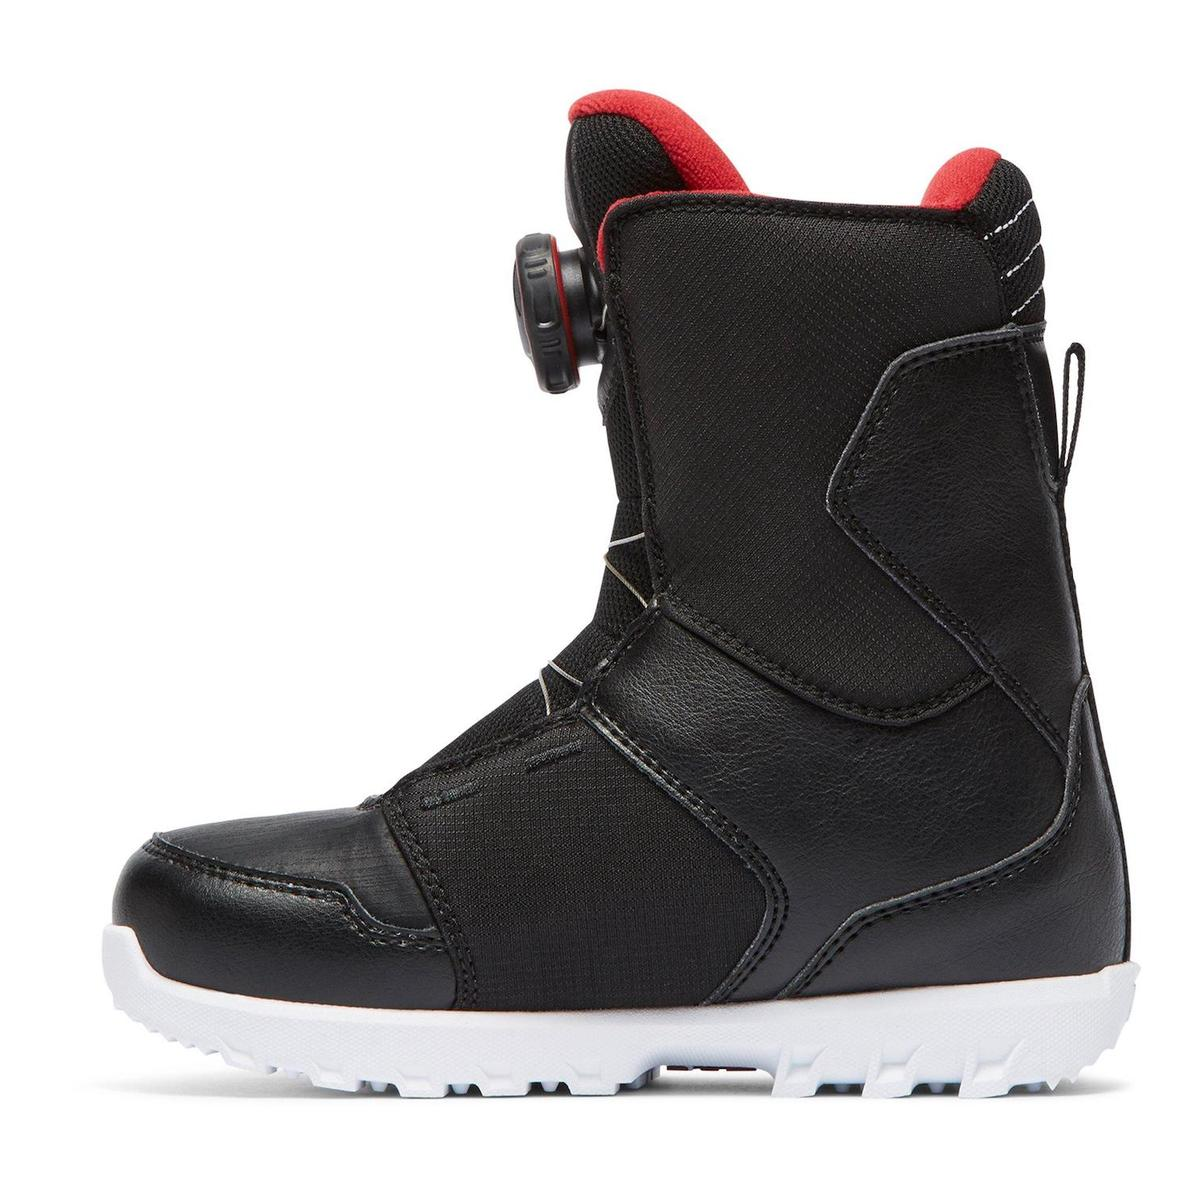 DC Scout BOA Youth Snowboard Boots